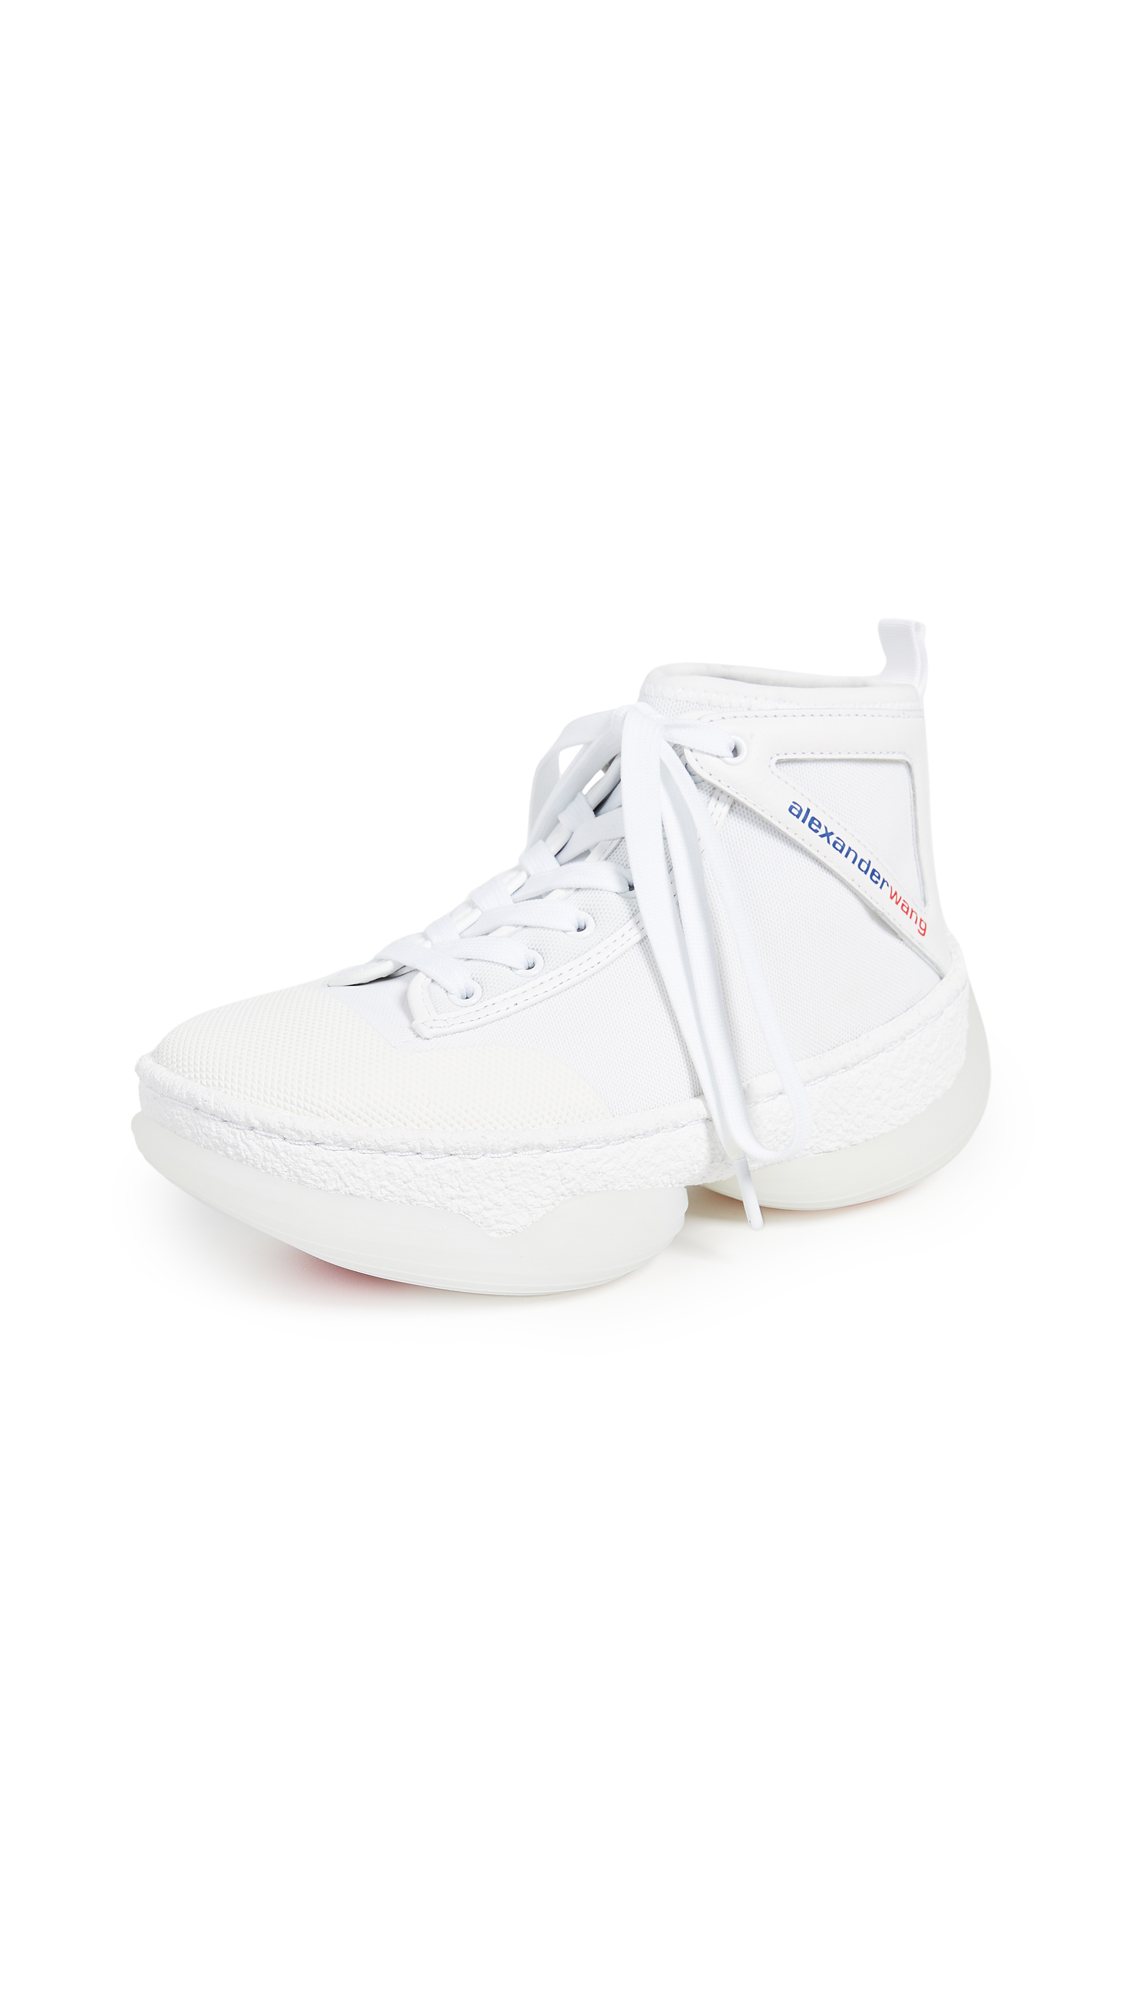 Alexander Wang A1 Sneakers - White